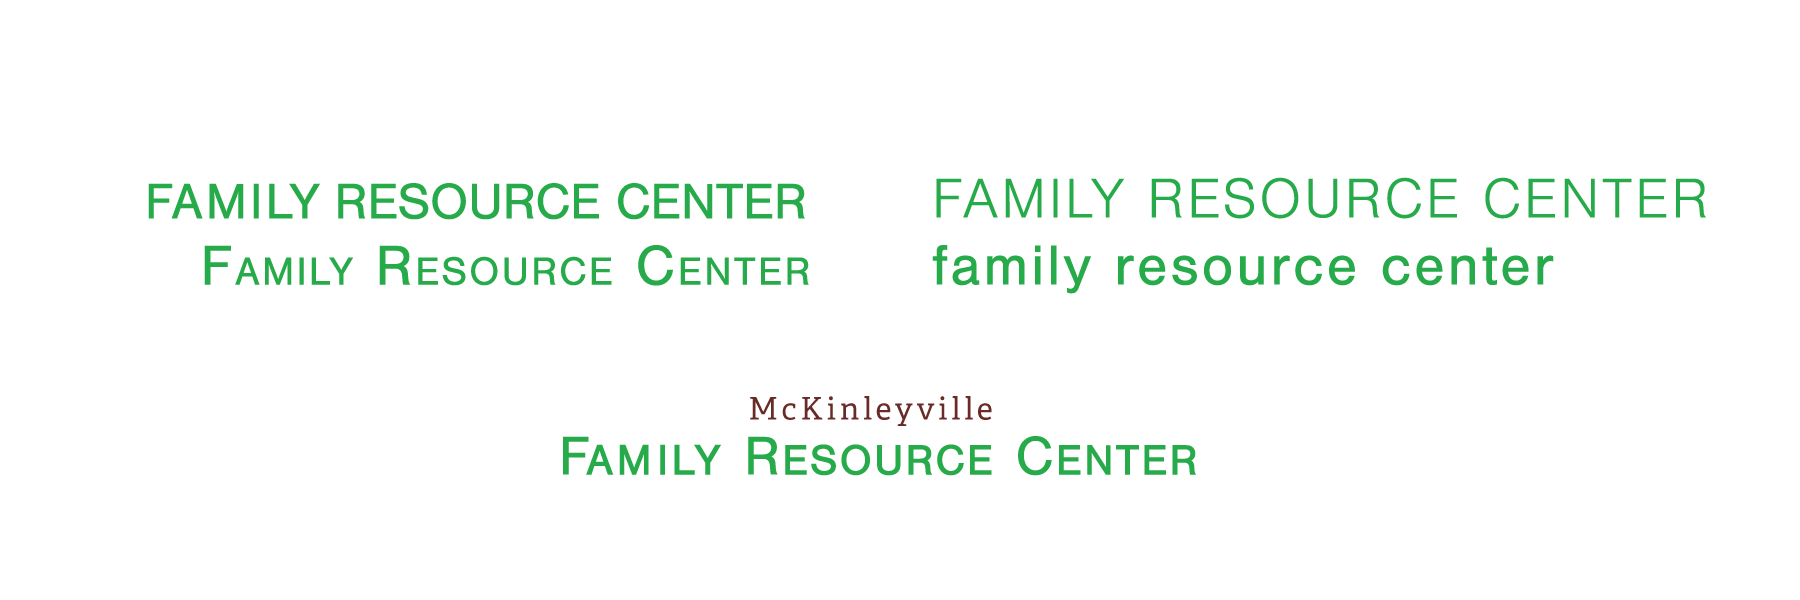 McKinleyville Family Resource Center typography